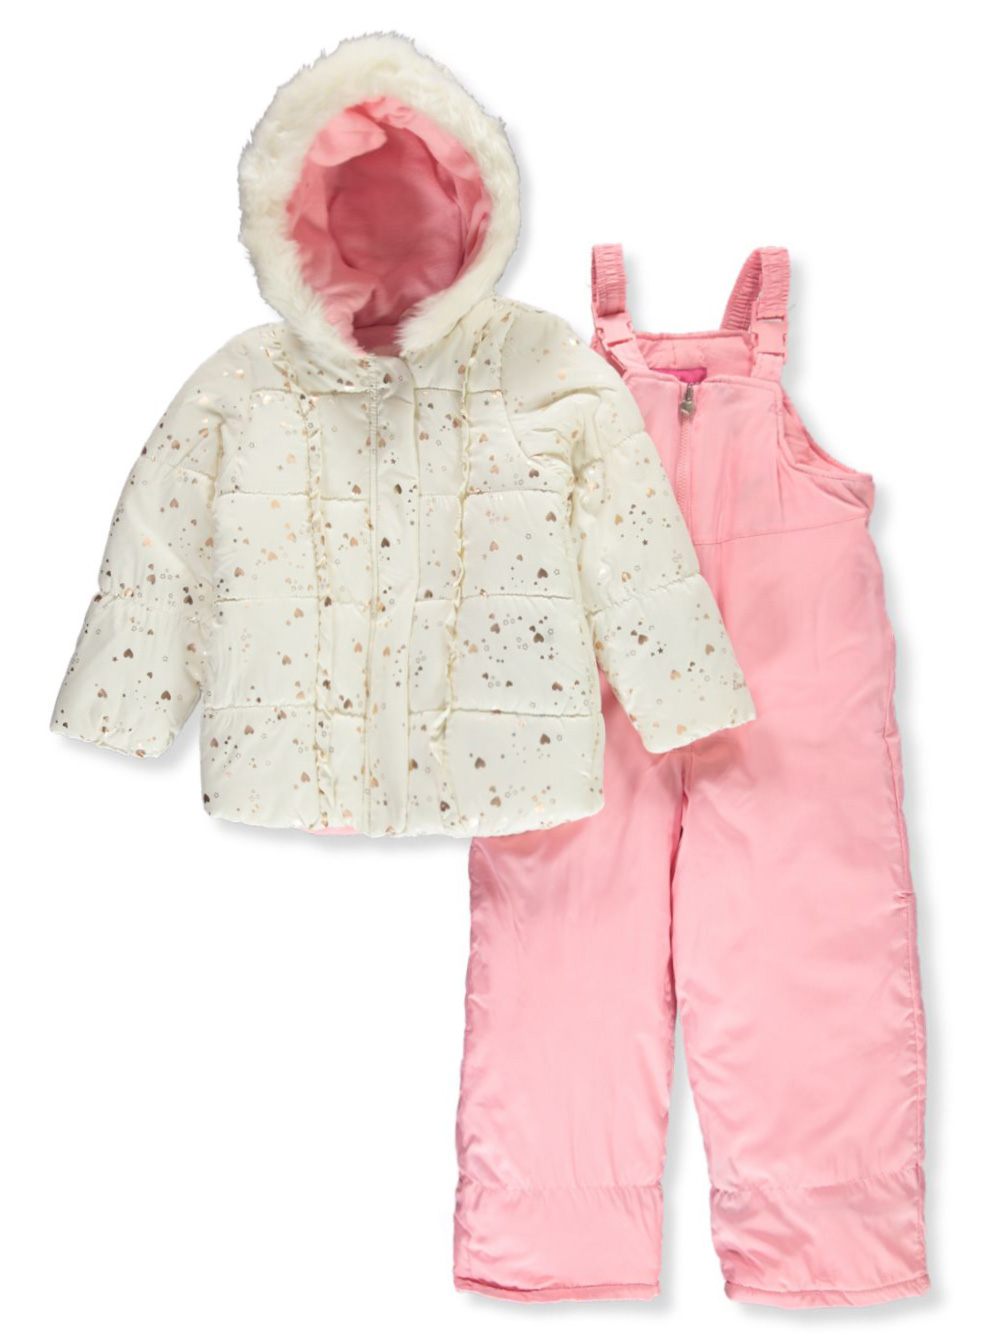 Ivory and Pink Snowsuits